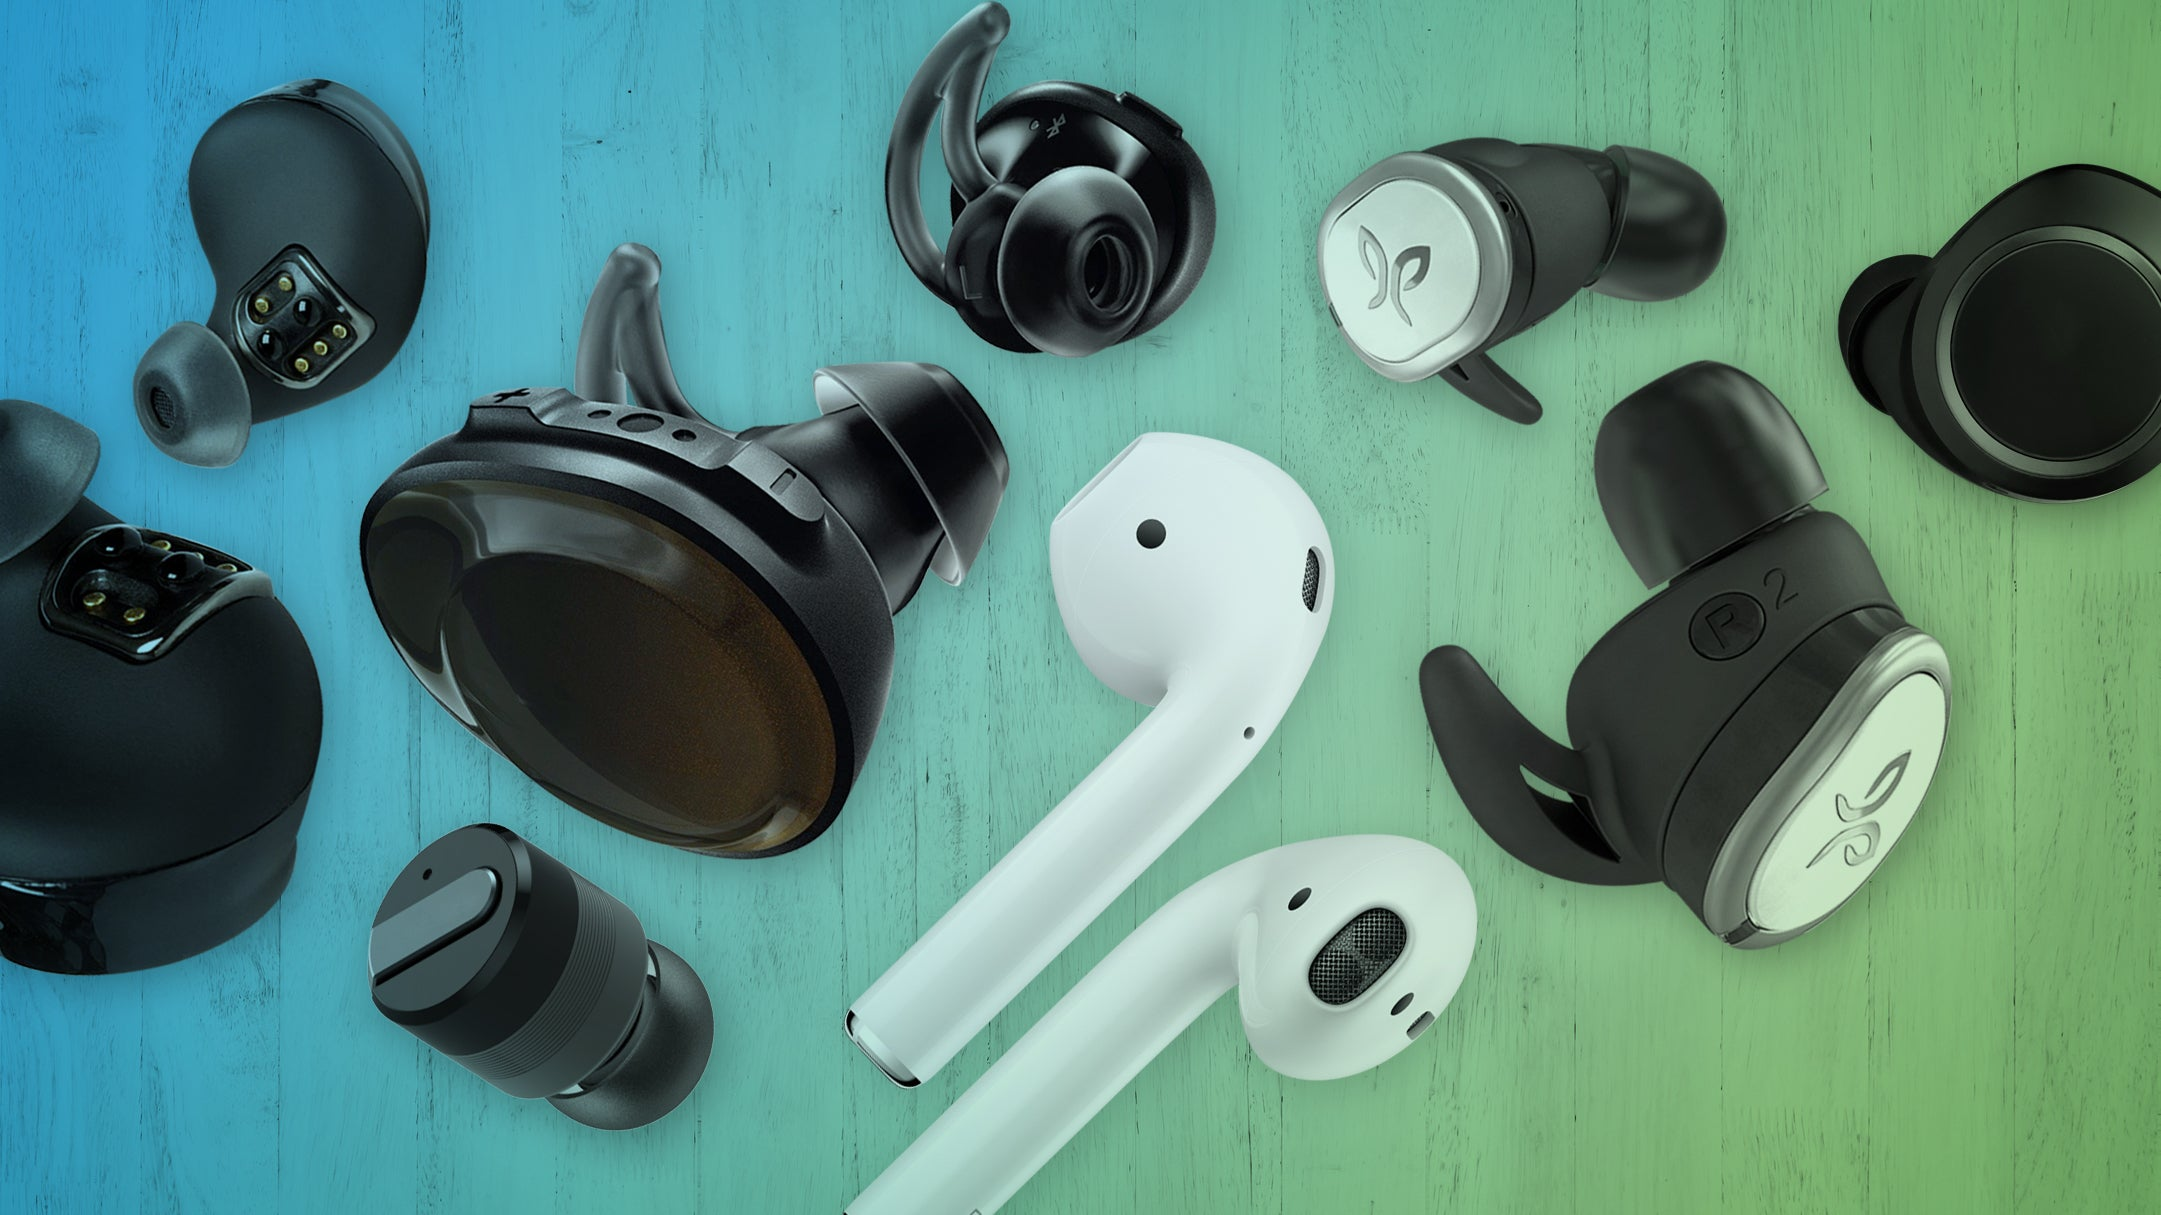 b1c690e561c Best true wireless earbuds 2019: Top picks, expert reviews | Macworld